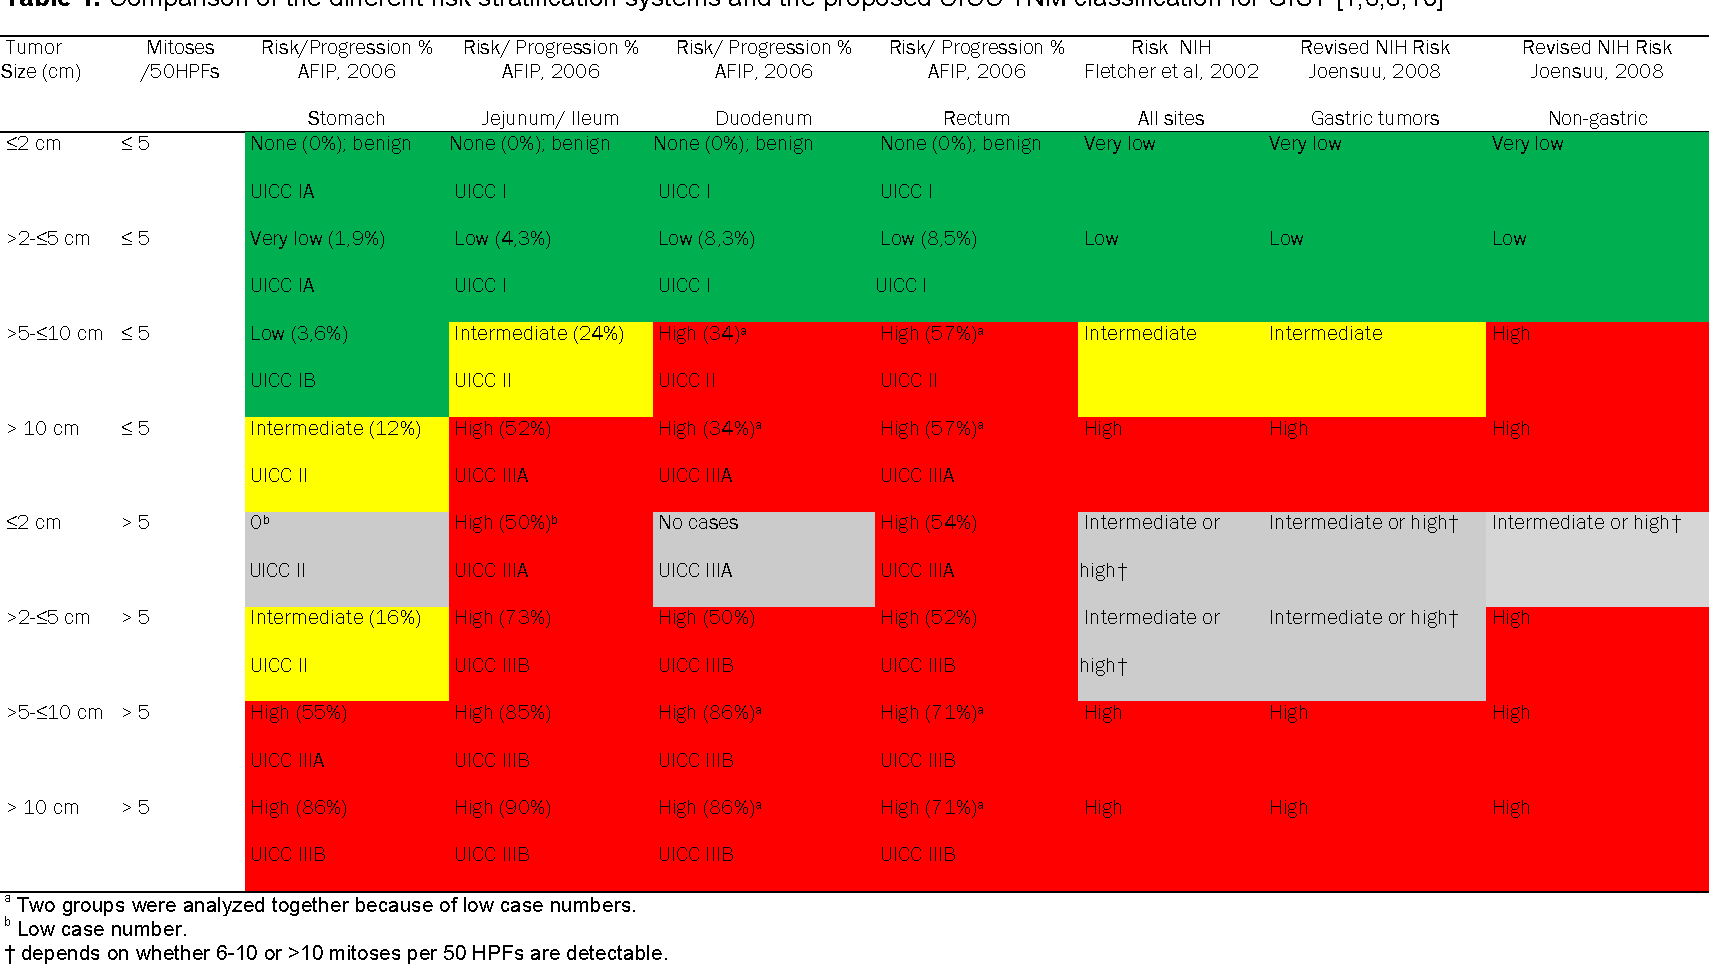 Table 1 from Gastrointestinal stromal tumors (GIST) from